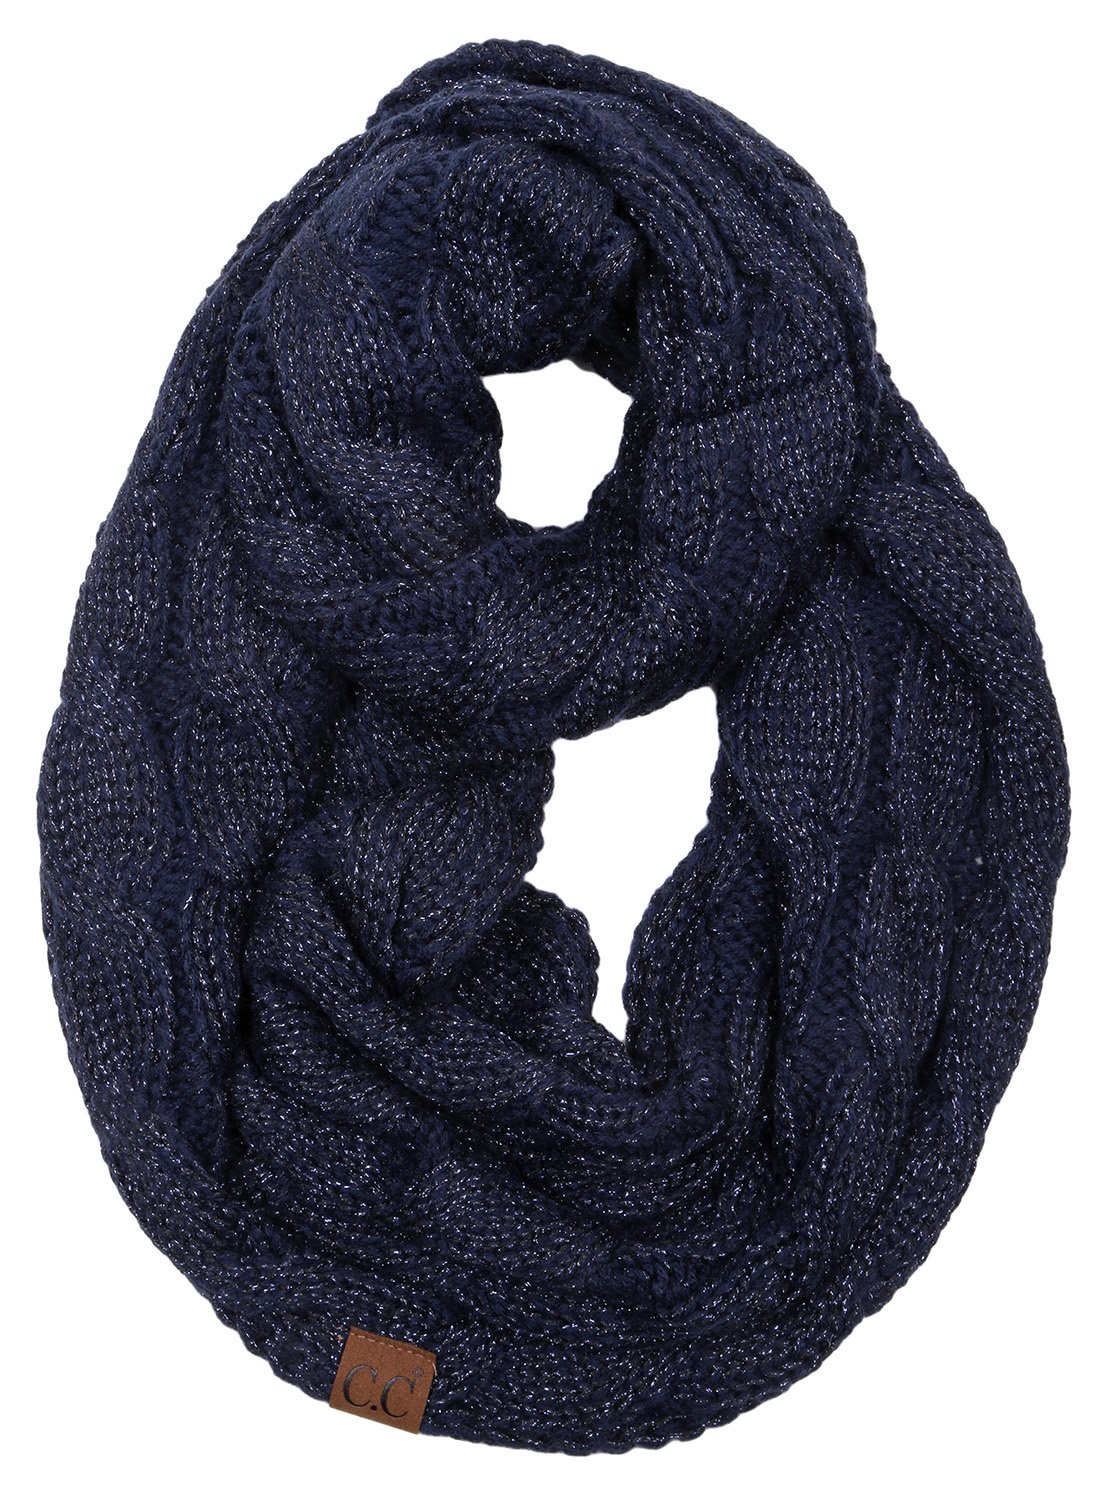 Funky Junque's C.C Beanies Matching Ribbed Winter Warm Cable Knit Infinity Scarf 1 Solid Mel Grey (2 Pack) S1-6100-2-6066-FJ